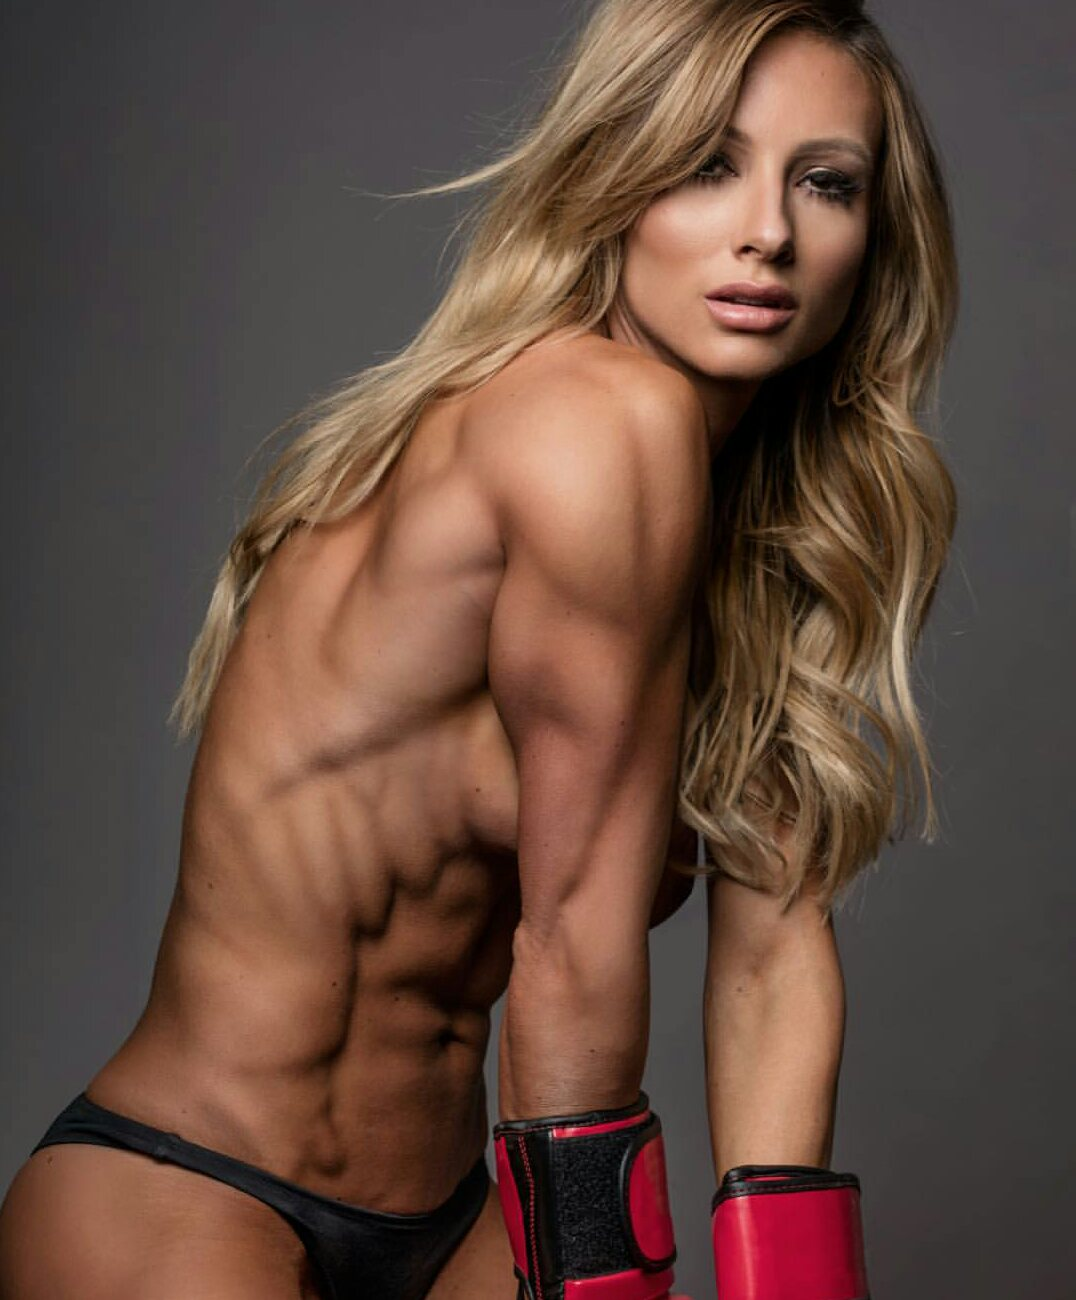 Have Sexy body builder woman picture